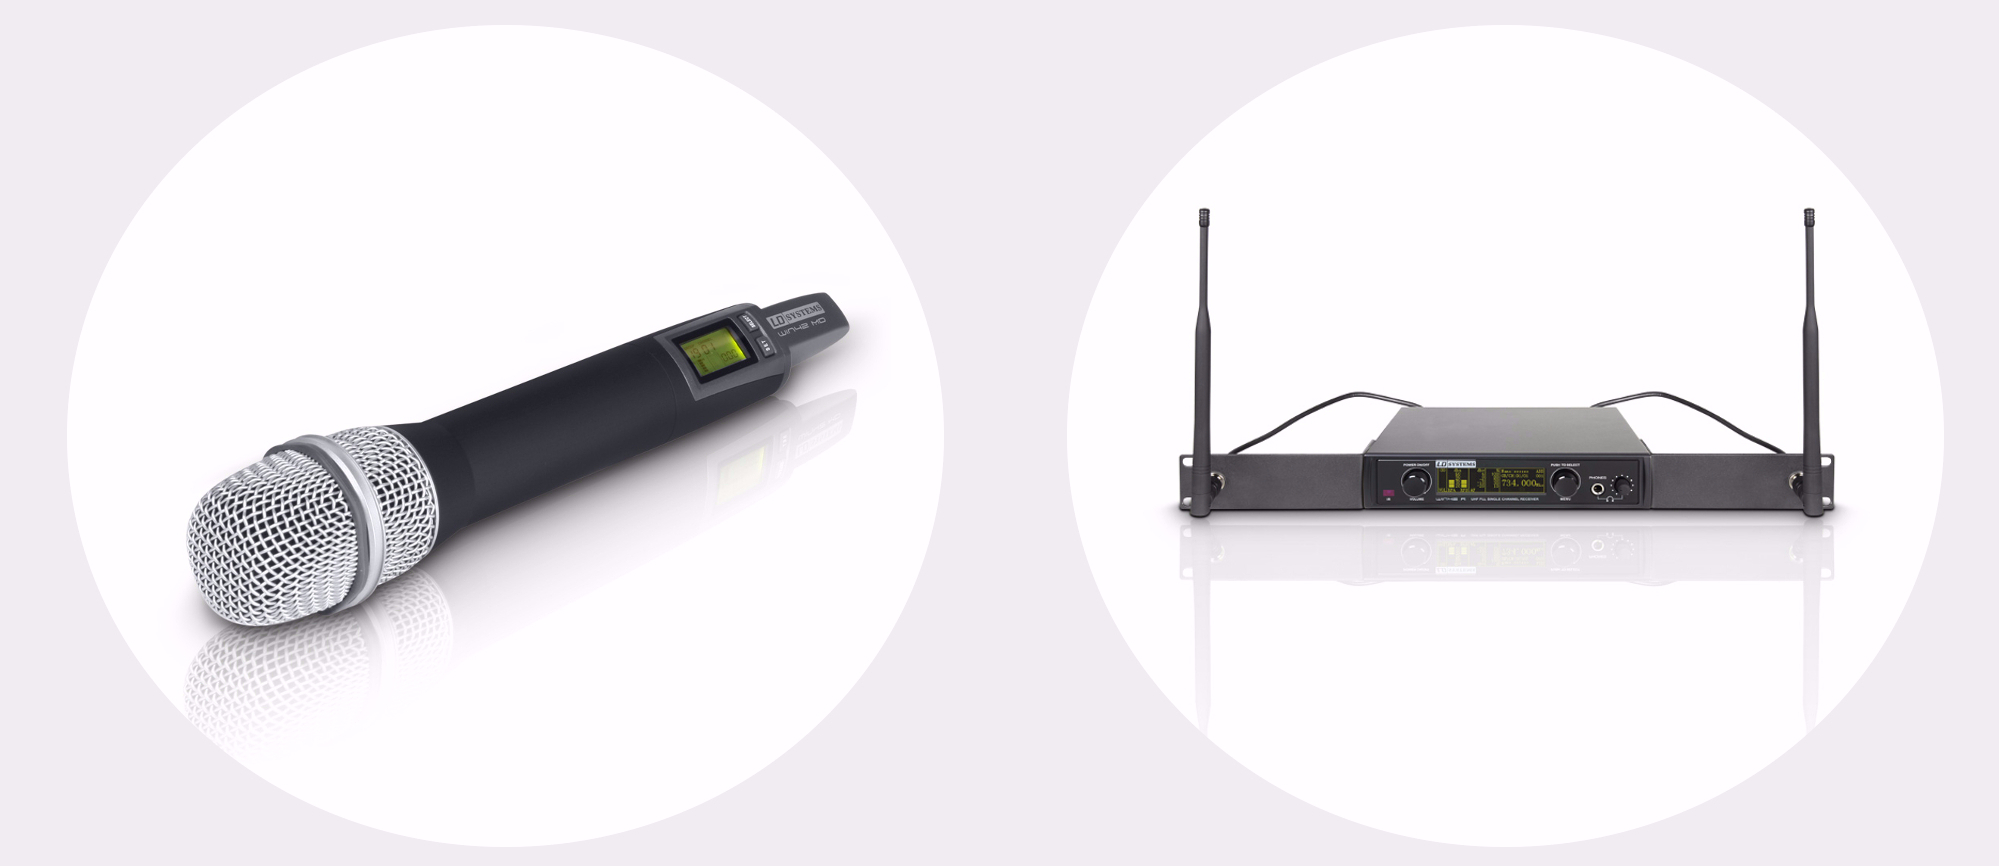 Handheld transmitter and receiver with rackkit